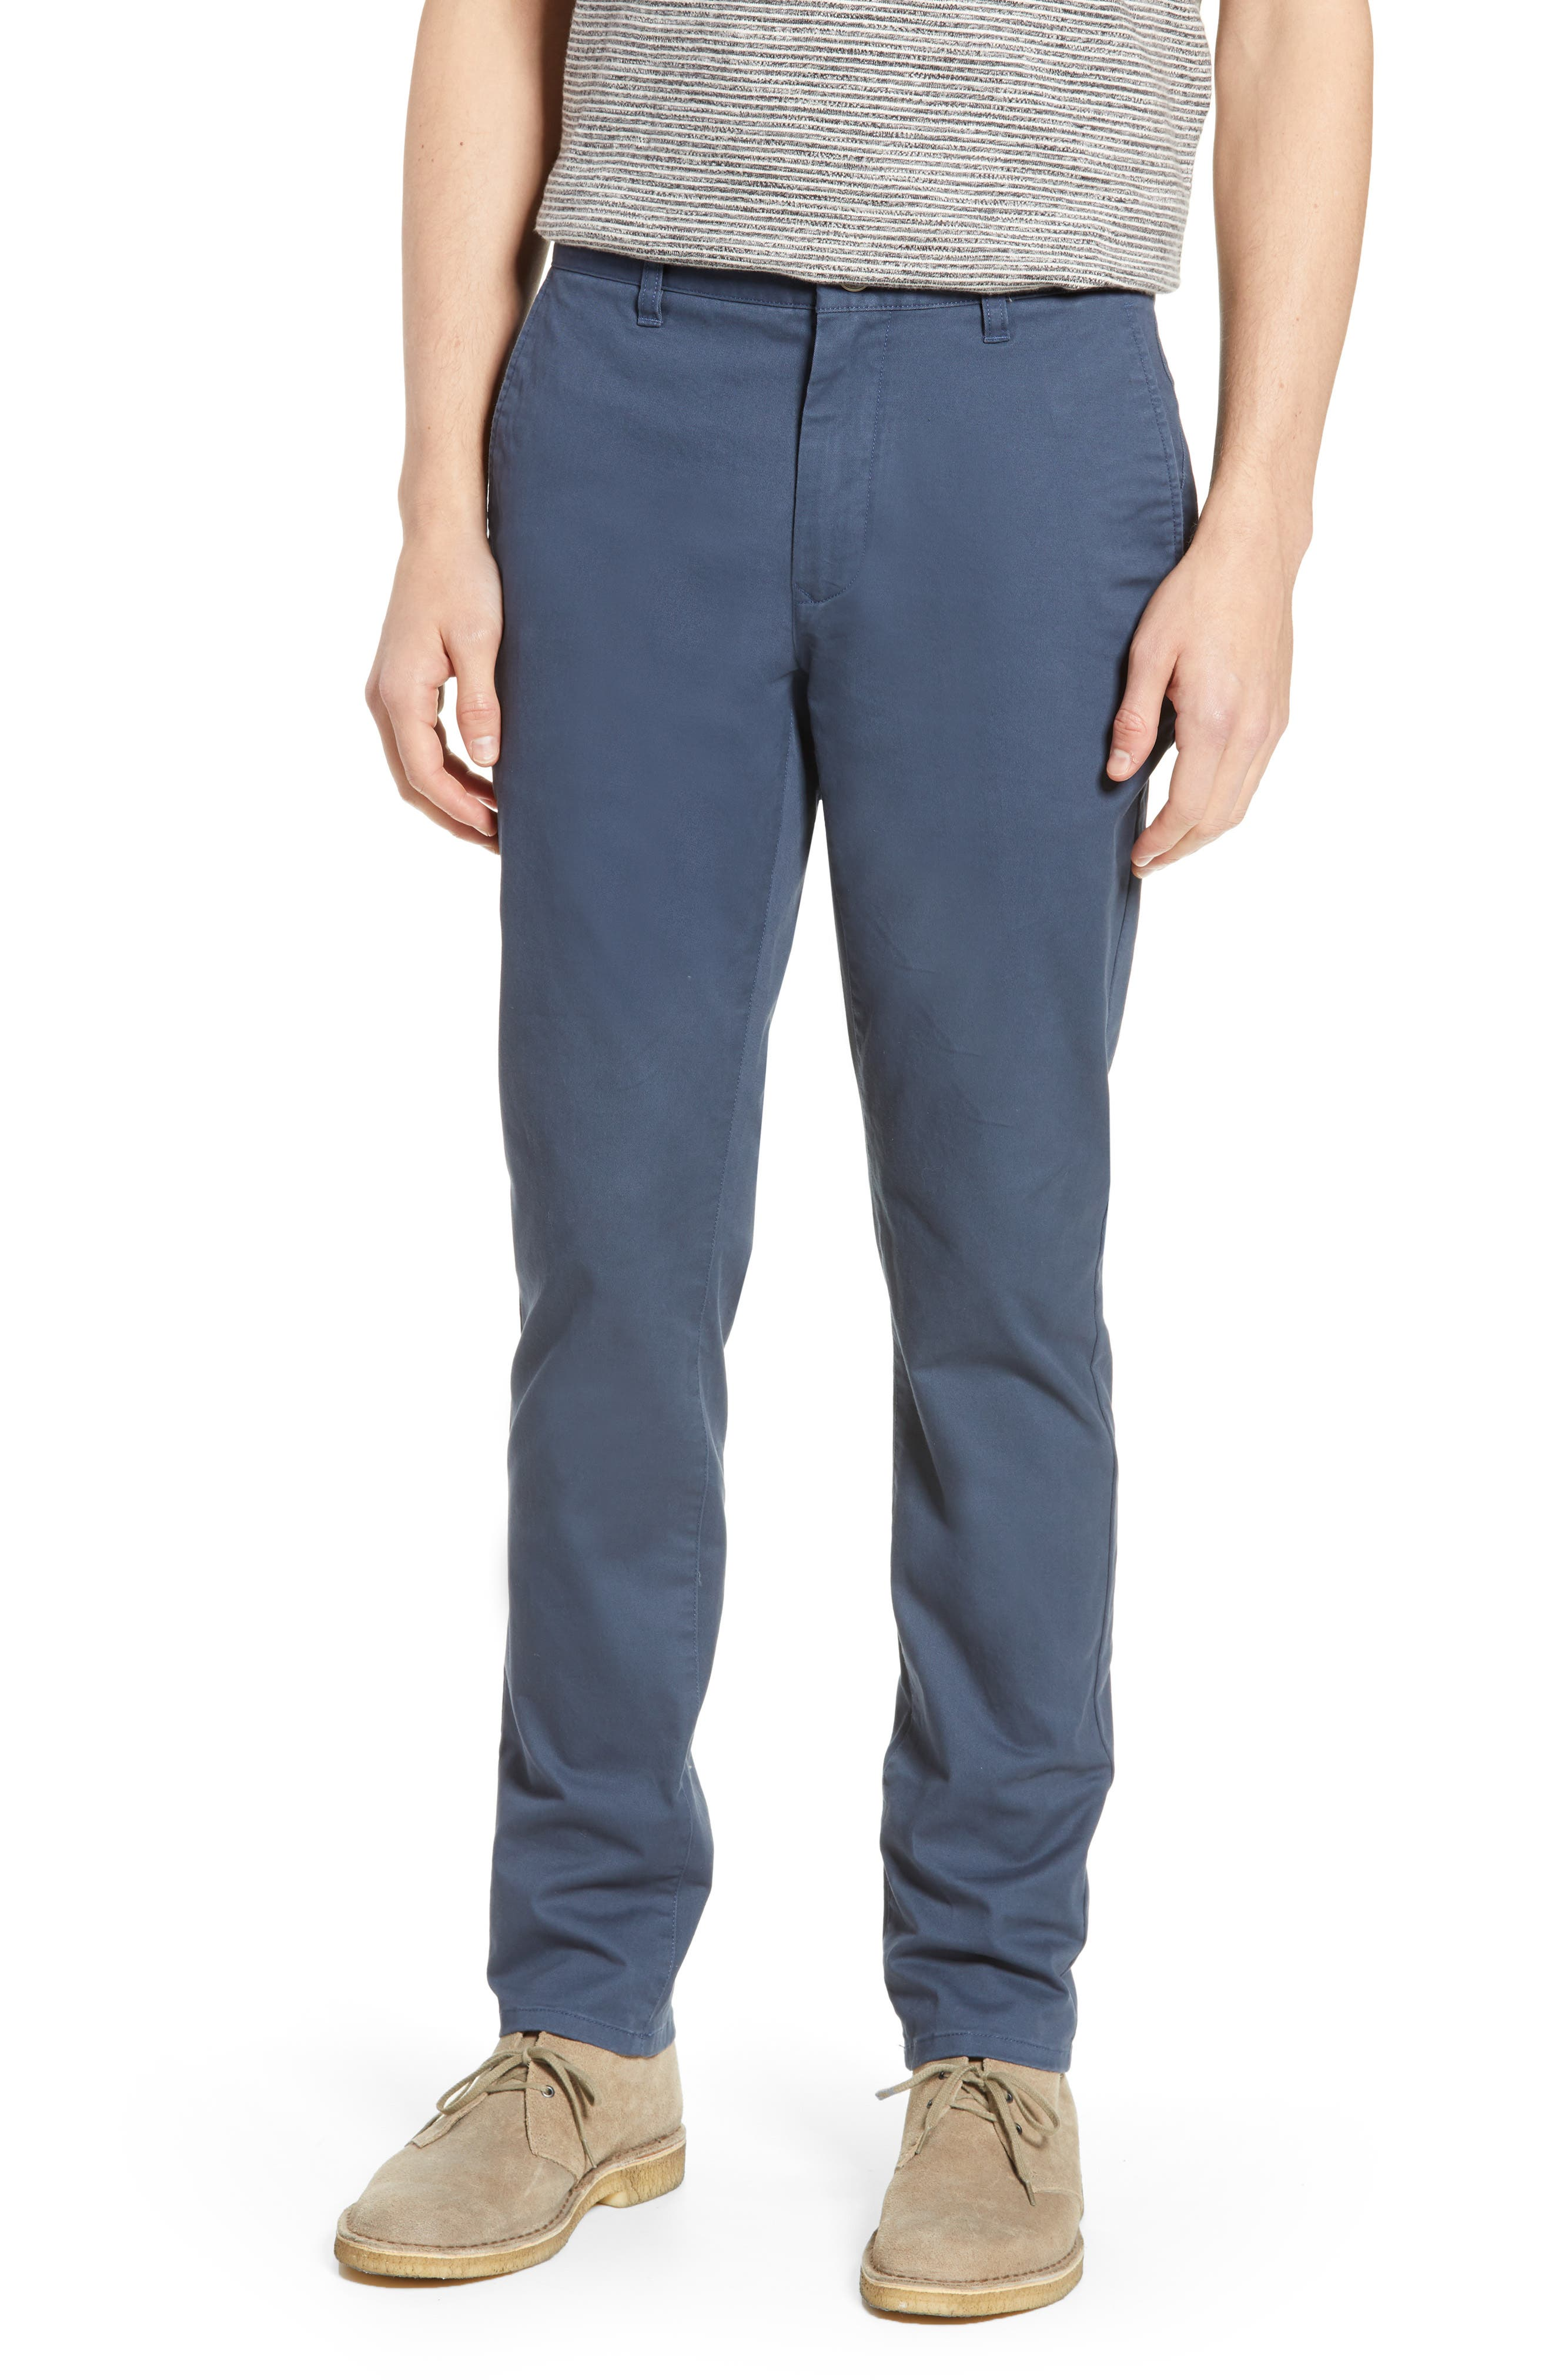 BONOBOS Tailored Fit Washed Stretch Cotton Chinos, Main, color, STEELY